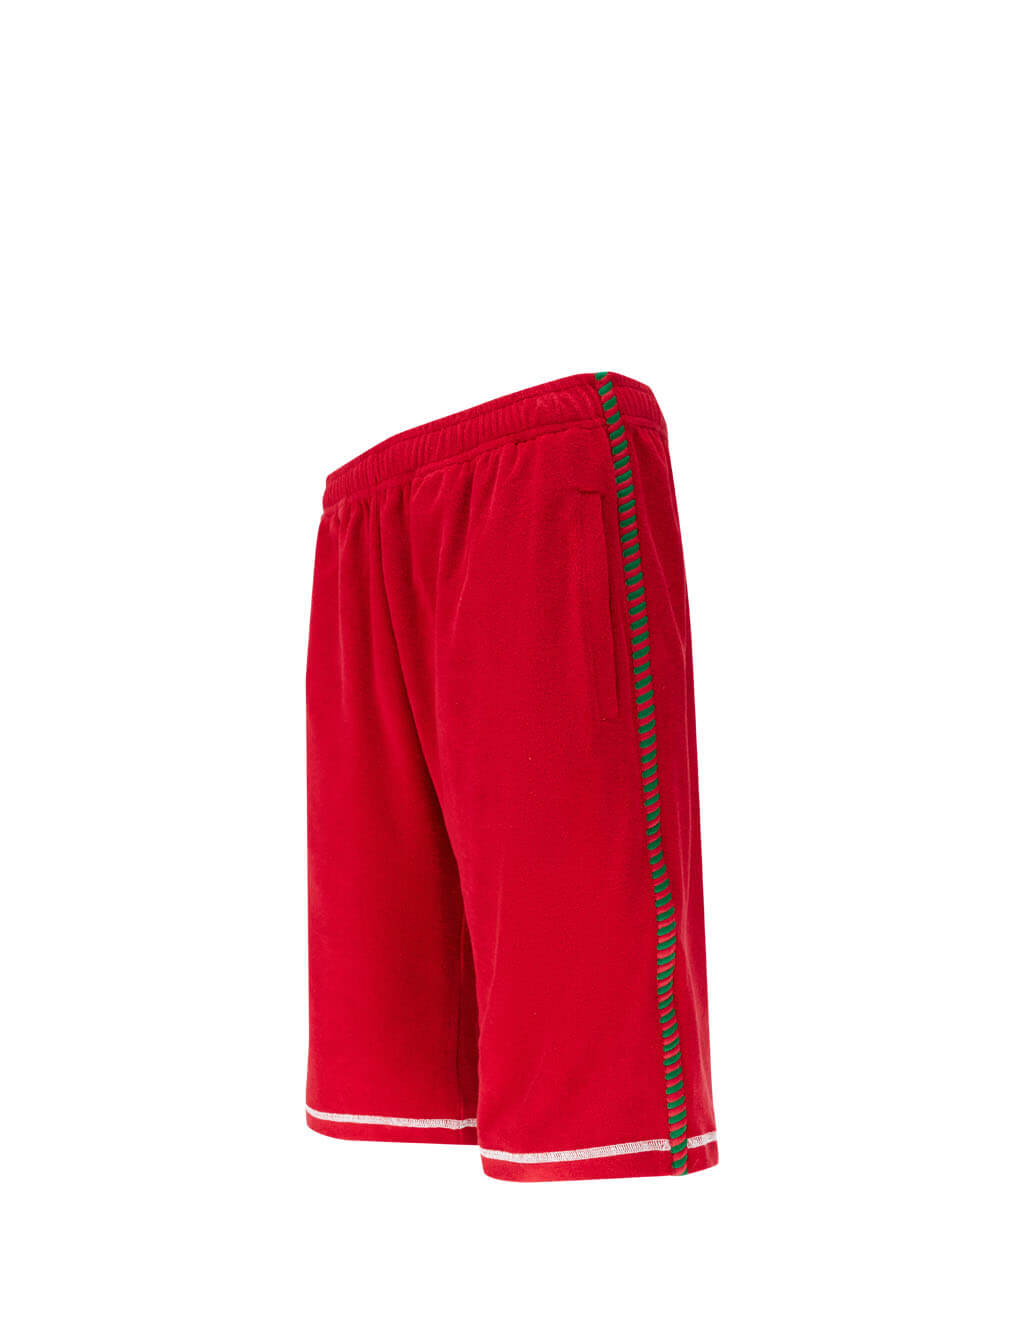 Men's Gucci Basket Sweatpant Shorts in Live Red 599352 XJB6Y 6229